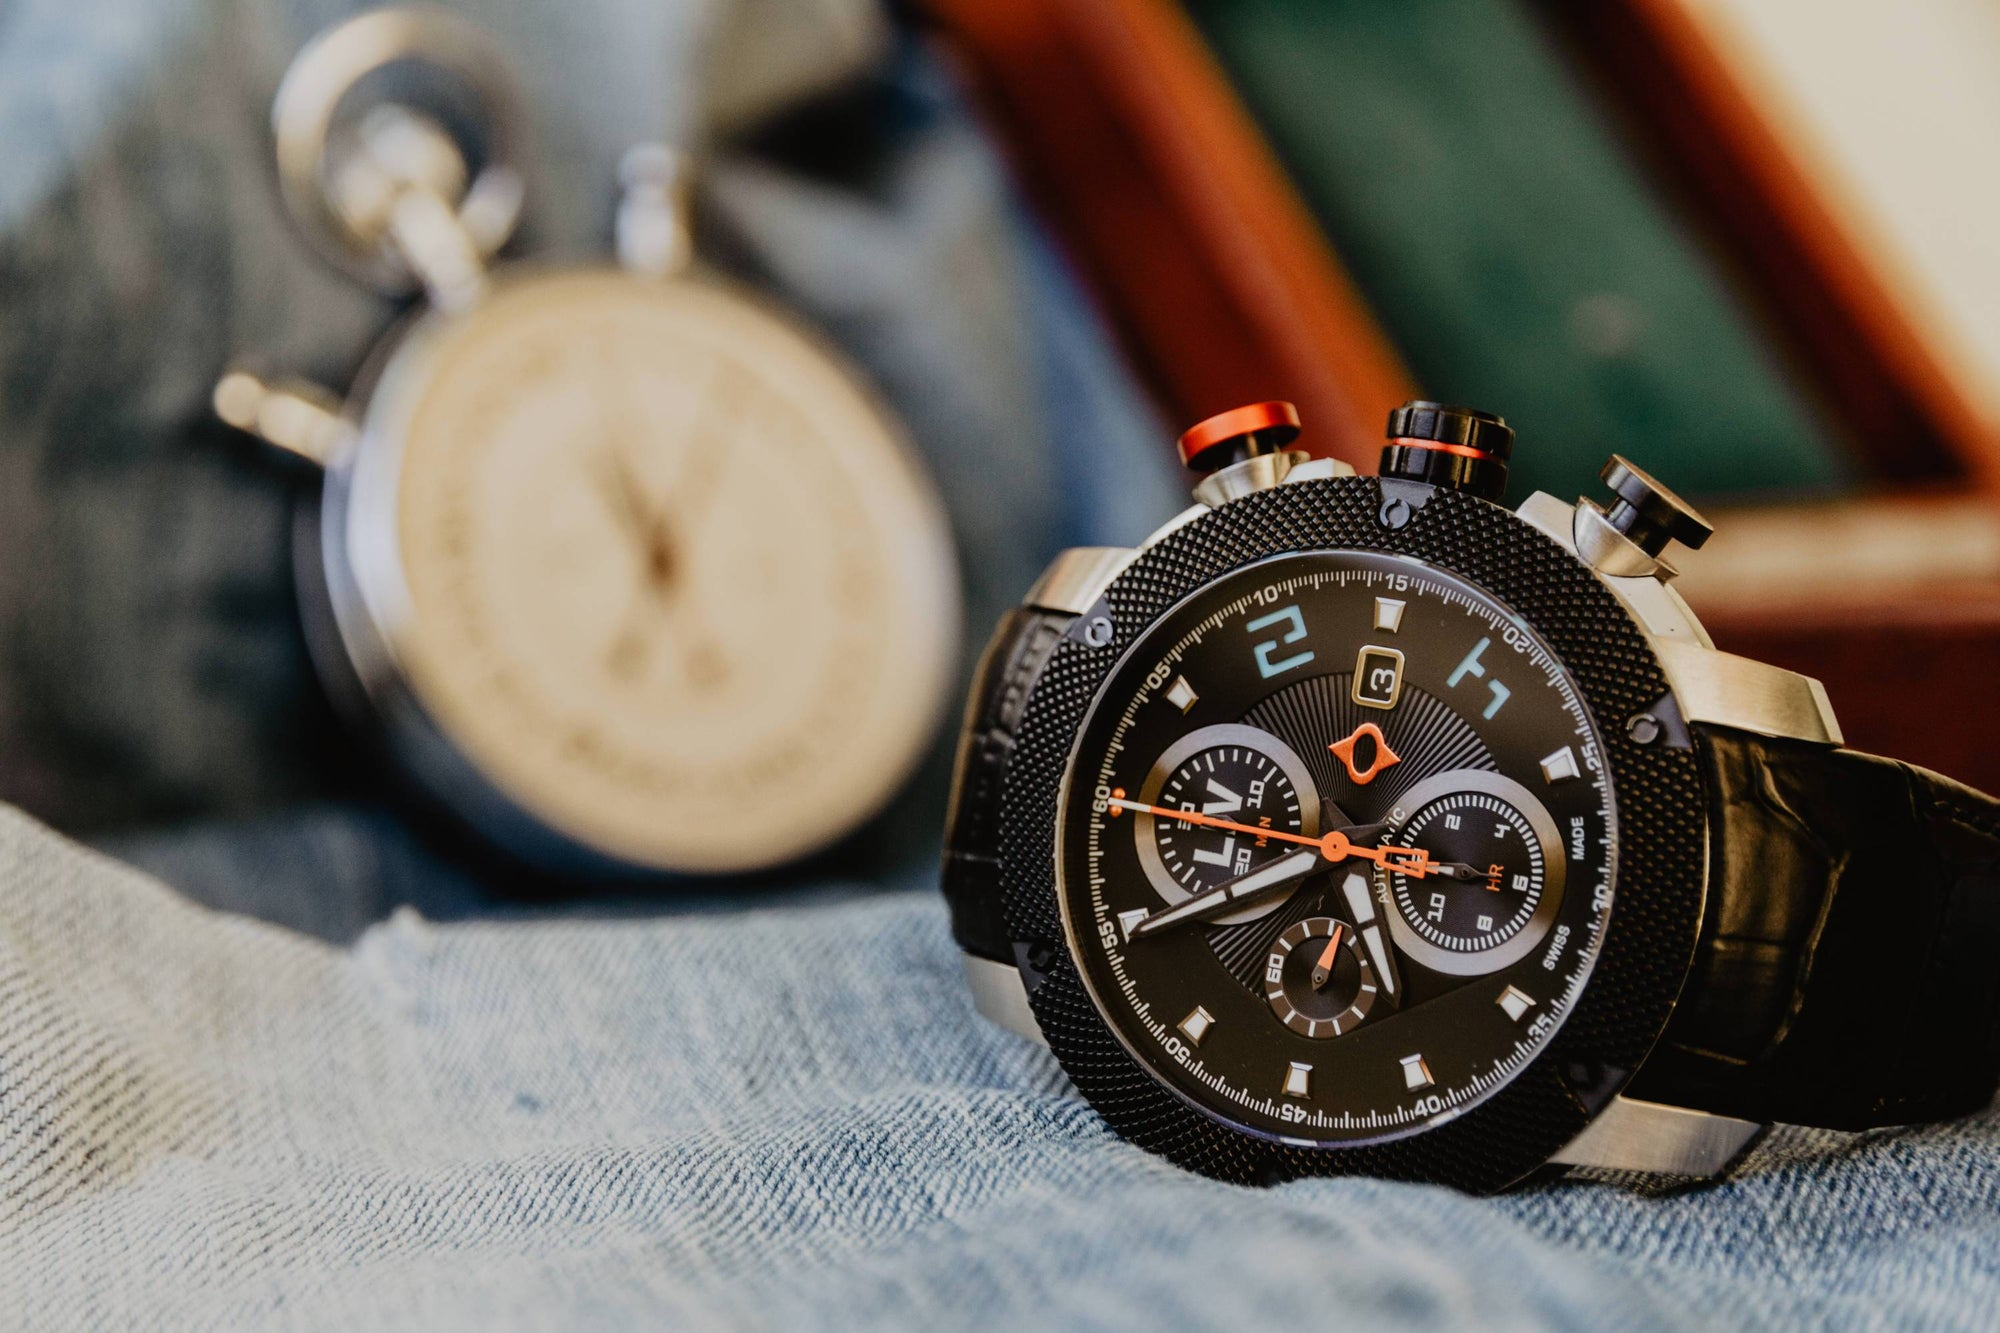 Quartz vs. Mechanical Watches